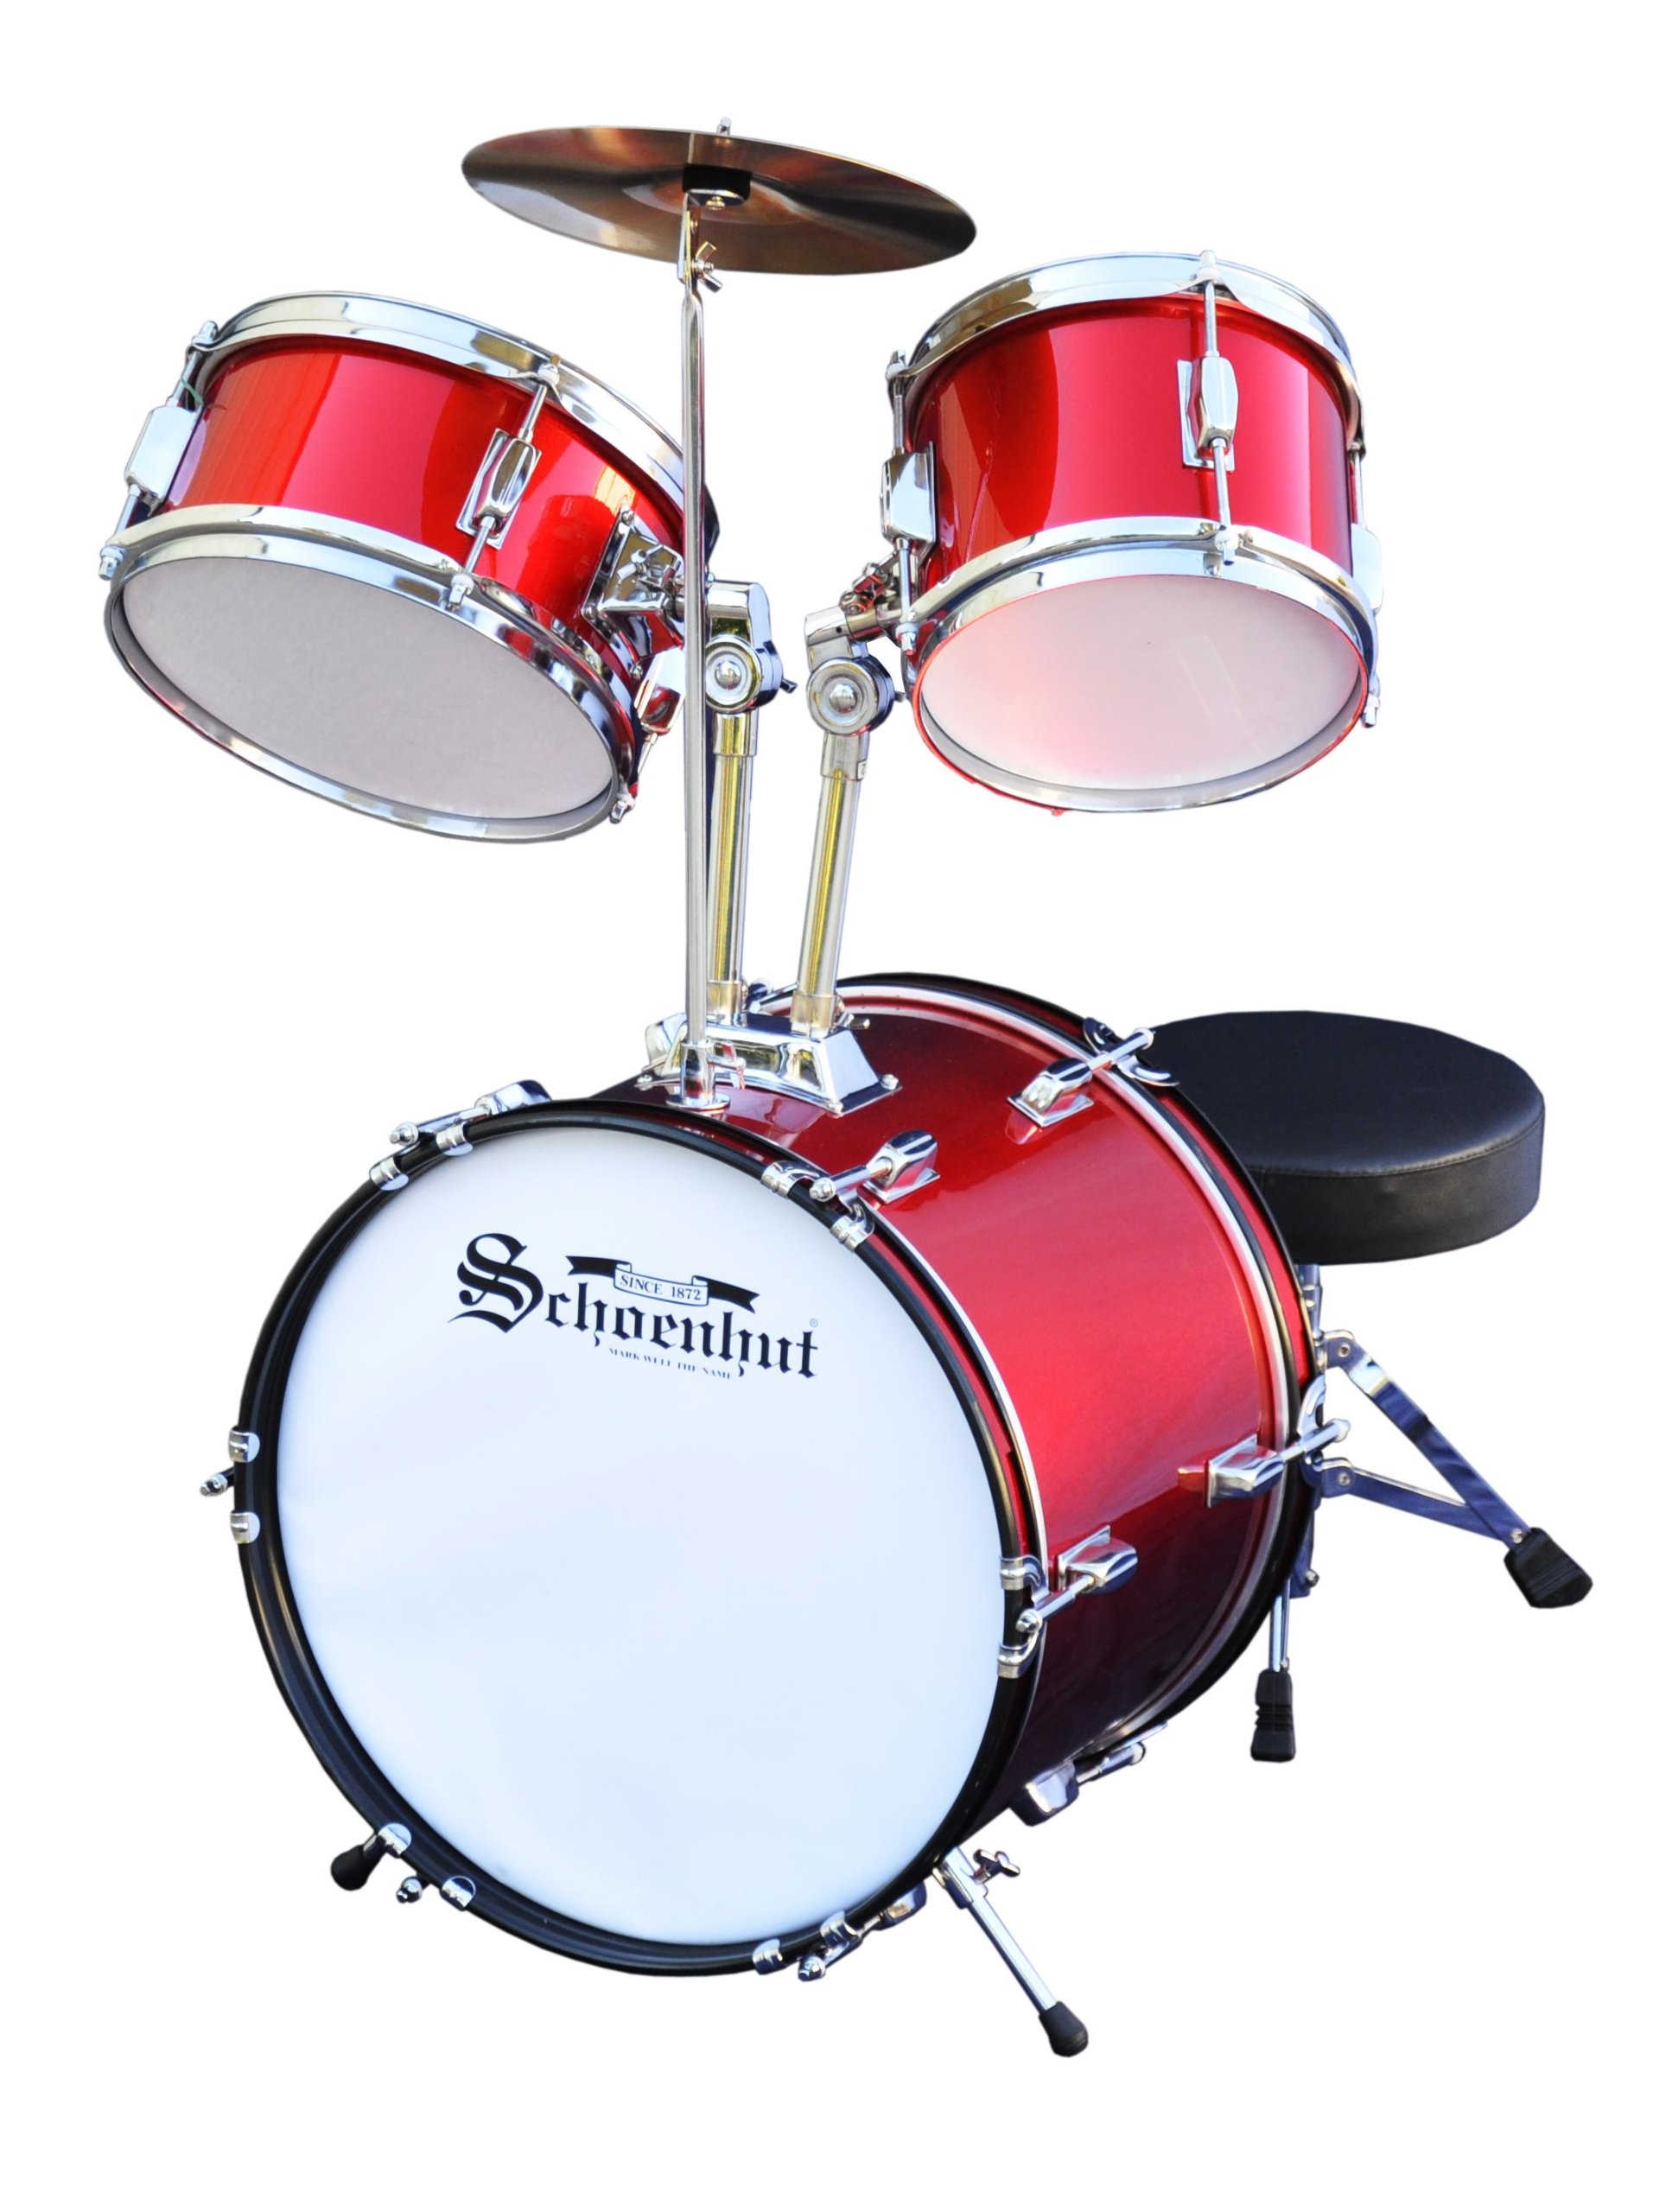 Schoenhut C1020 - 5 Piece Drum Set (Red) by Schoenhut